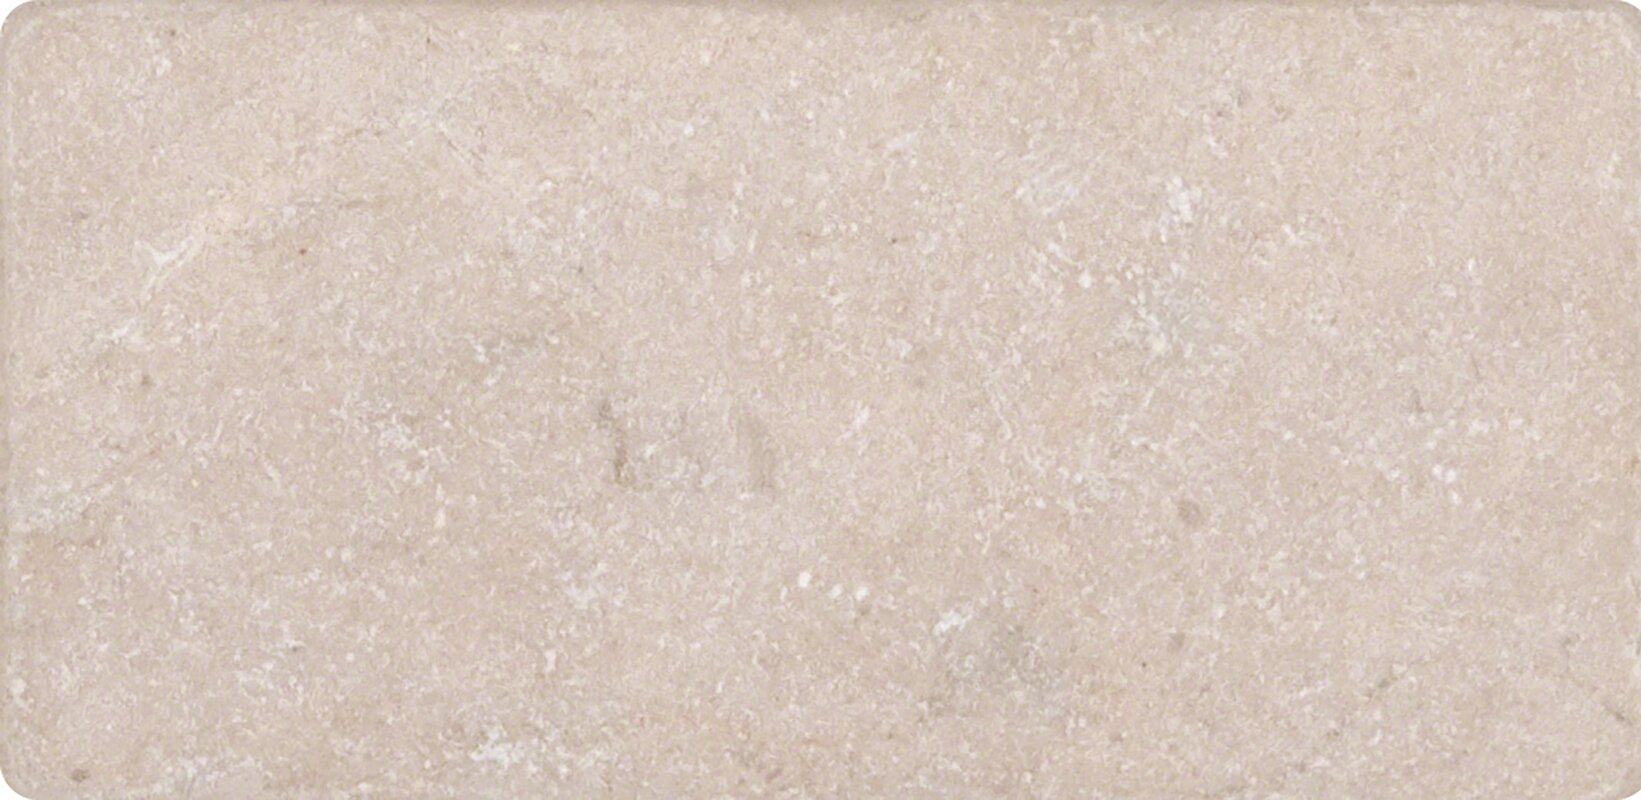 Msi 3 x 6 marble tile in polished cream and beige reviews 3 x 6 marble tile in polished cream dailygadgetfo Images